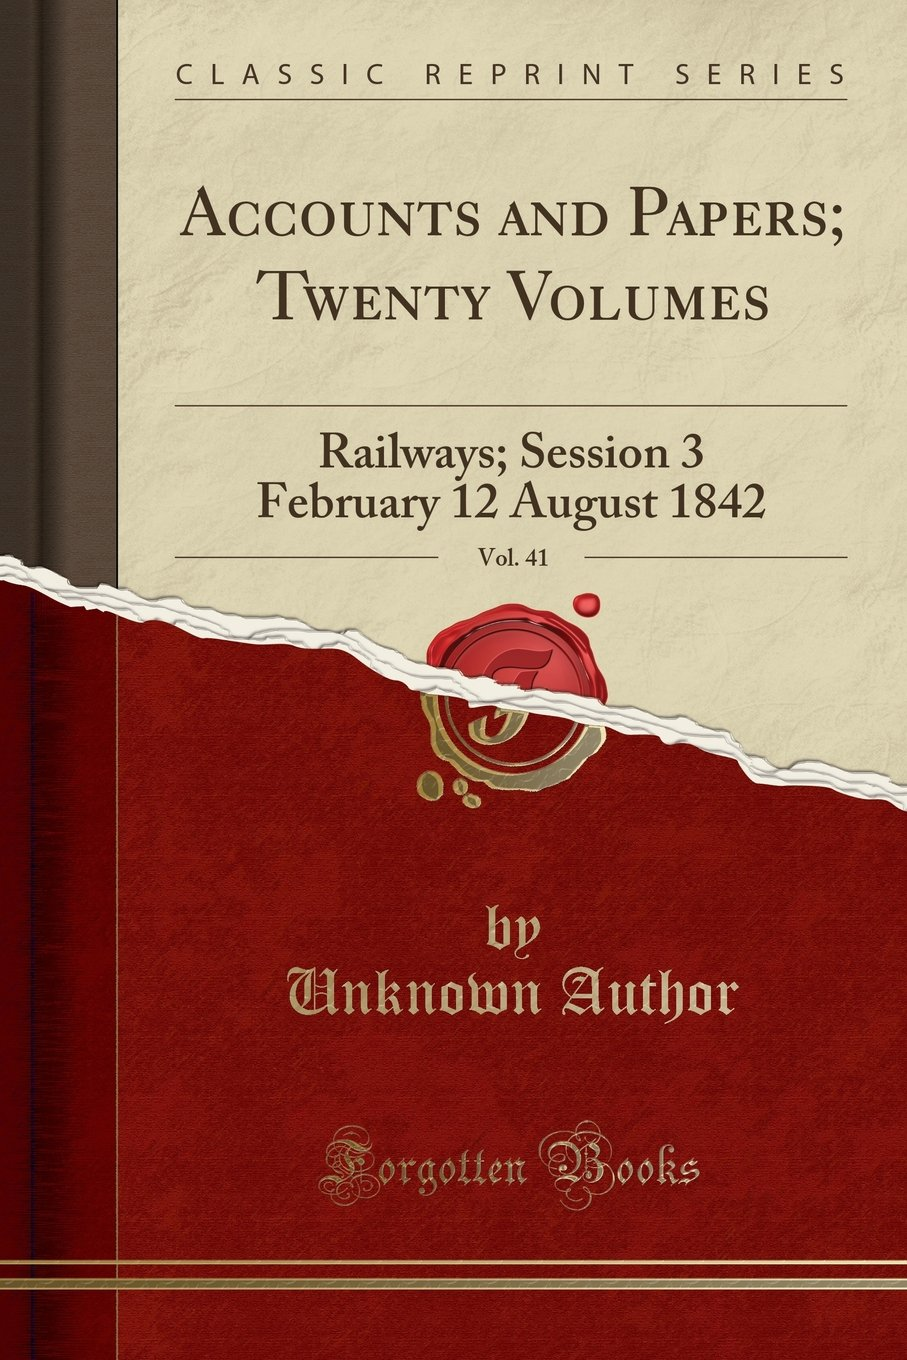 Accounts and Papers; Twenty Volumes, Vol. 41: Railways; Session 3 February 12 August 1842 (Classic Reprint) ebook